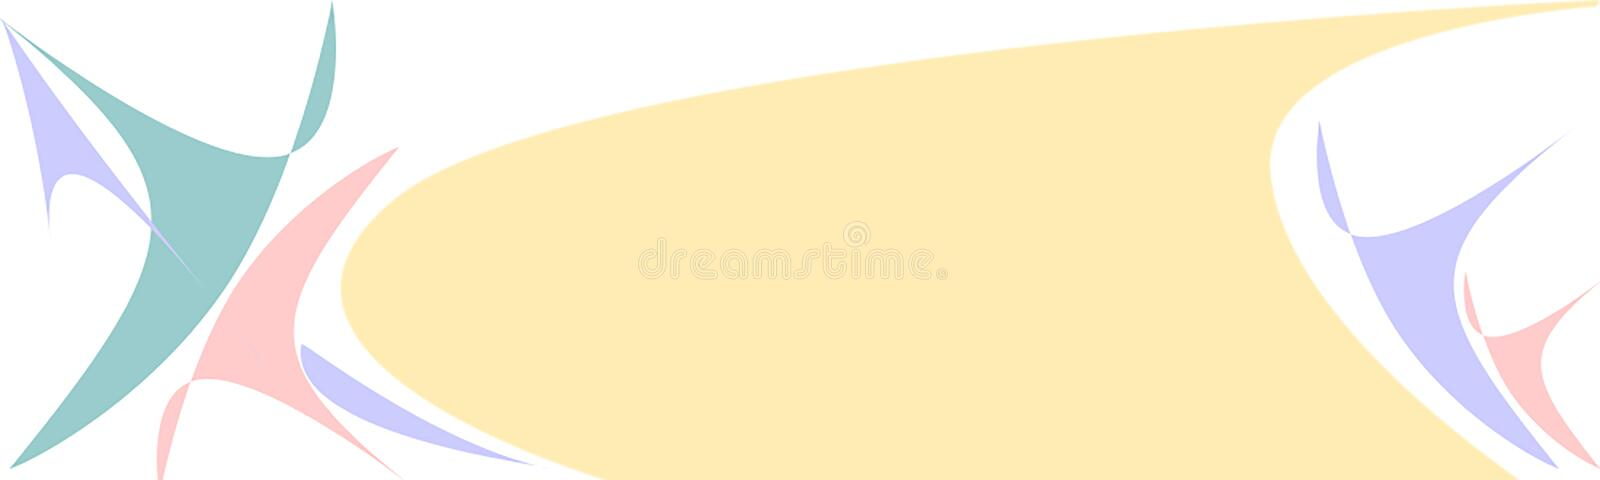 Banner horizontal. Blue, pink, beige royalty free stock image